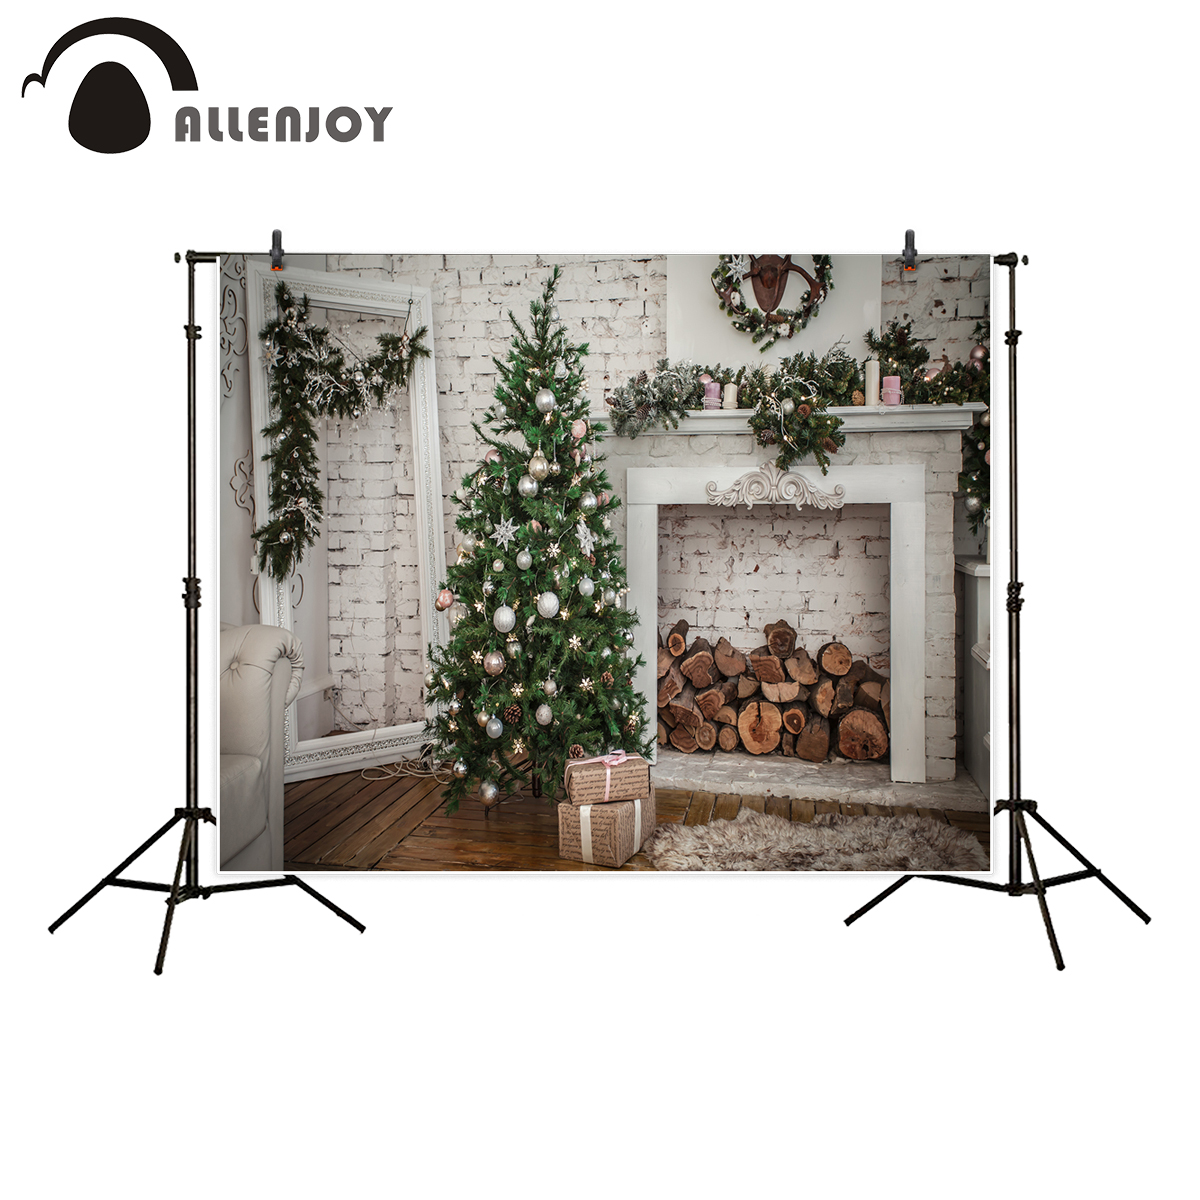 Allenjoy photography background Christmas tree brick wall fireplace nordic backdrop photocall printed portrait shooting christmas tree photography background christmas lights fireplace wall decors backdrop xt 4525